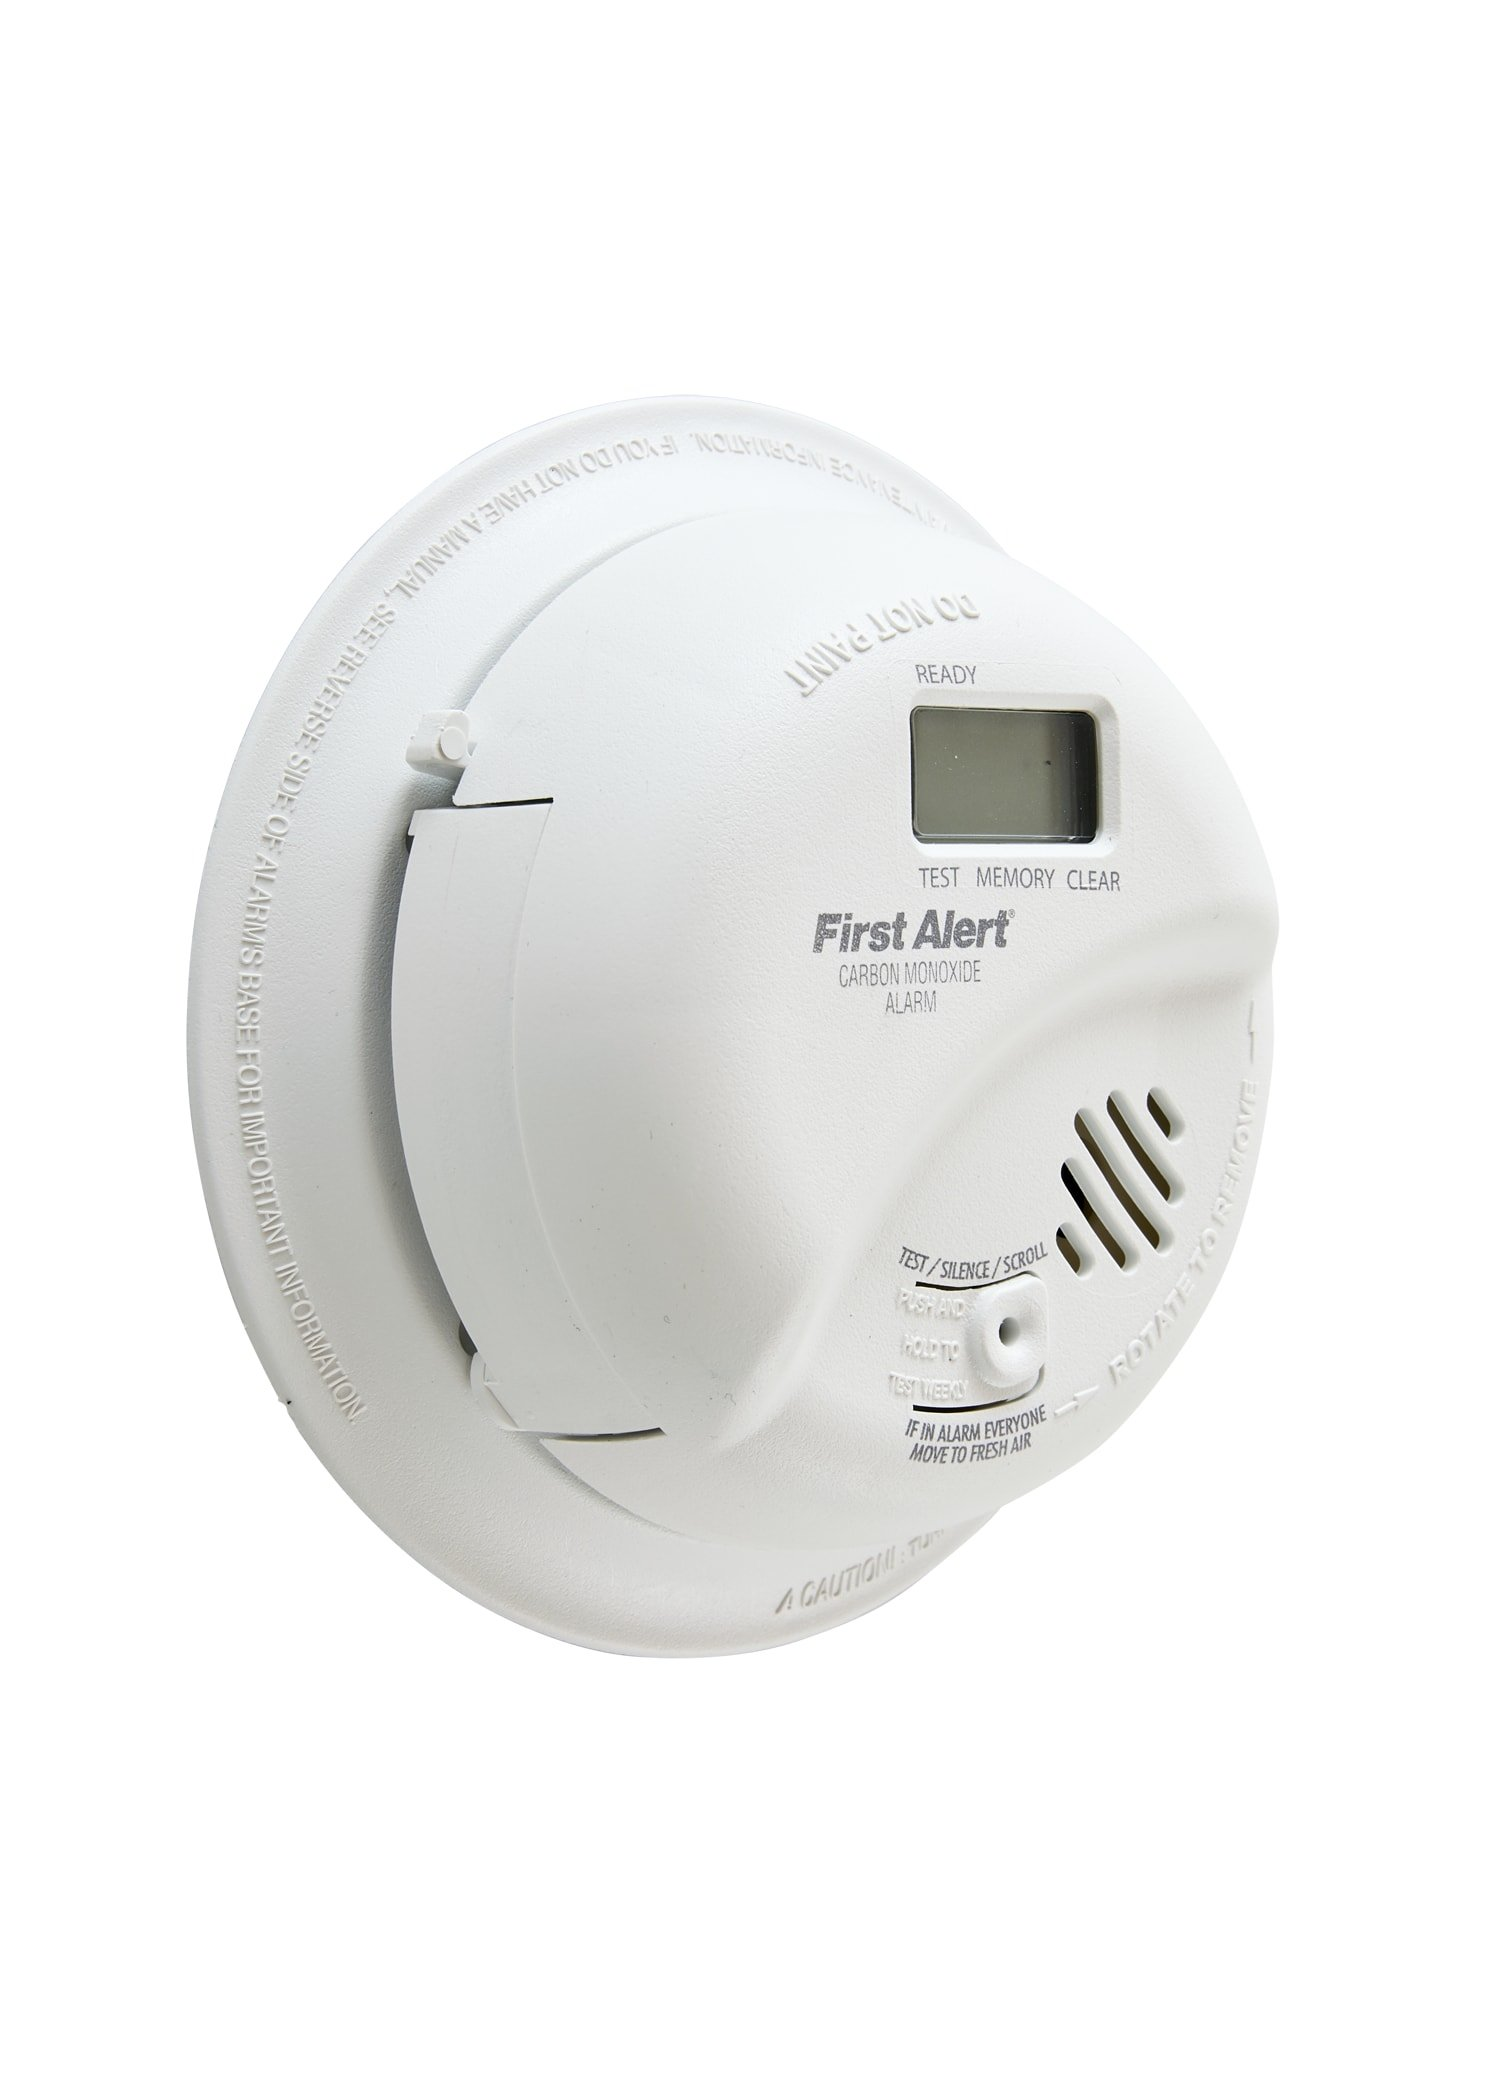 First Alert BRK CO5120PDBN Hardwire Carbon Monoxide Alarm with Battery Backup and Digital Display by First Alert